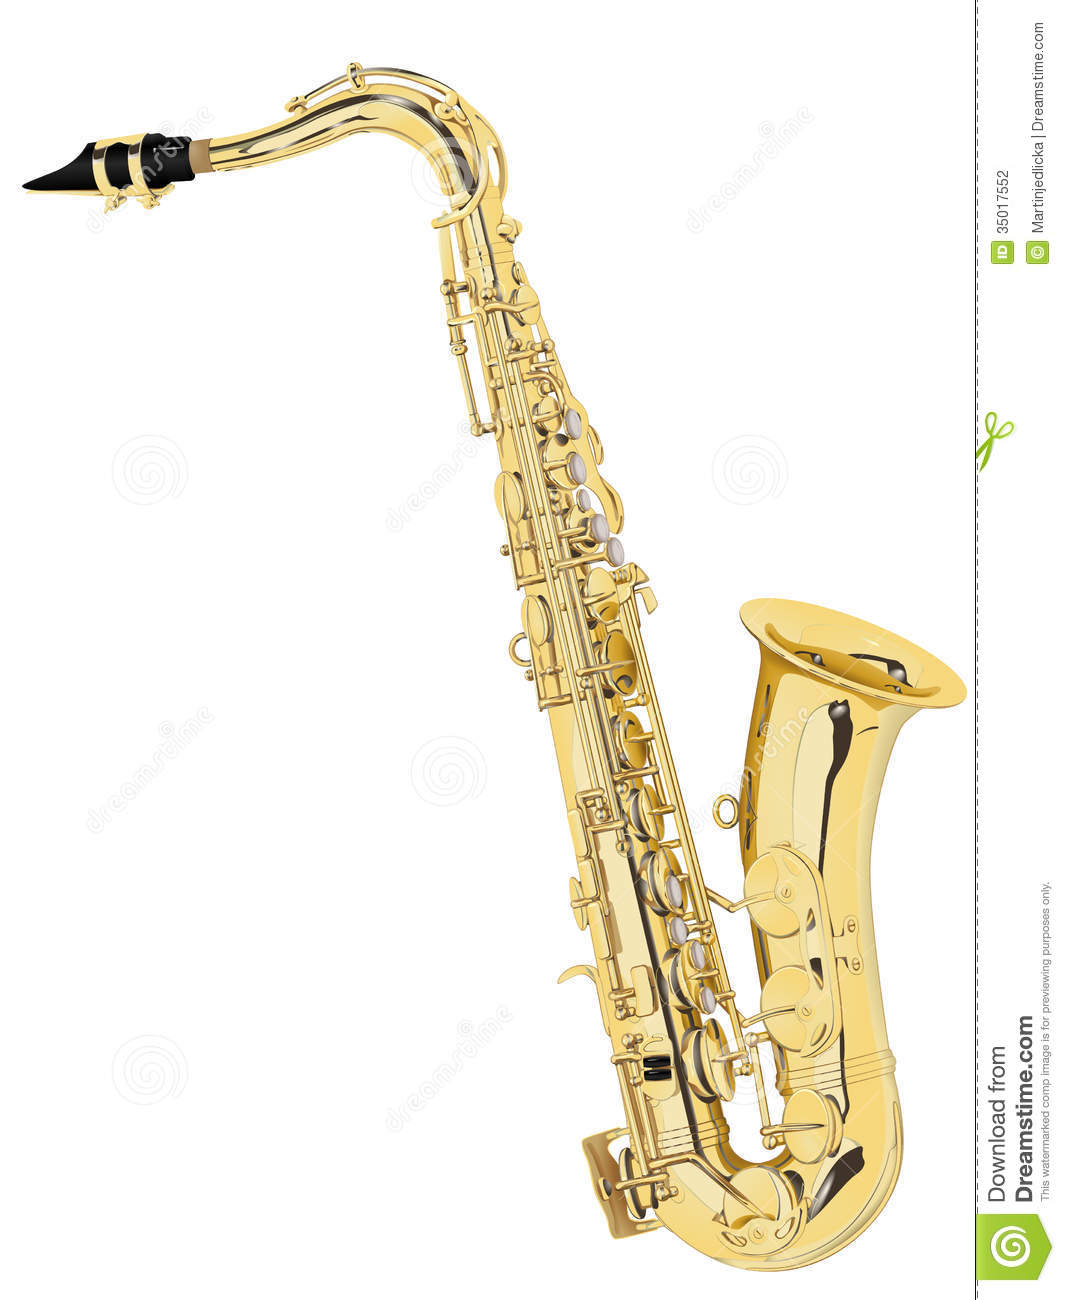 Woodwind musical instrument made of brass. Vector illustration.